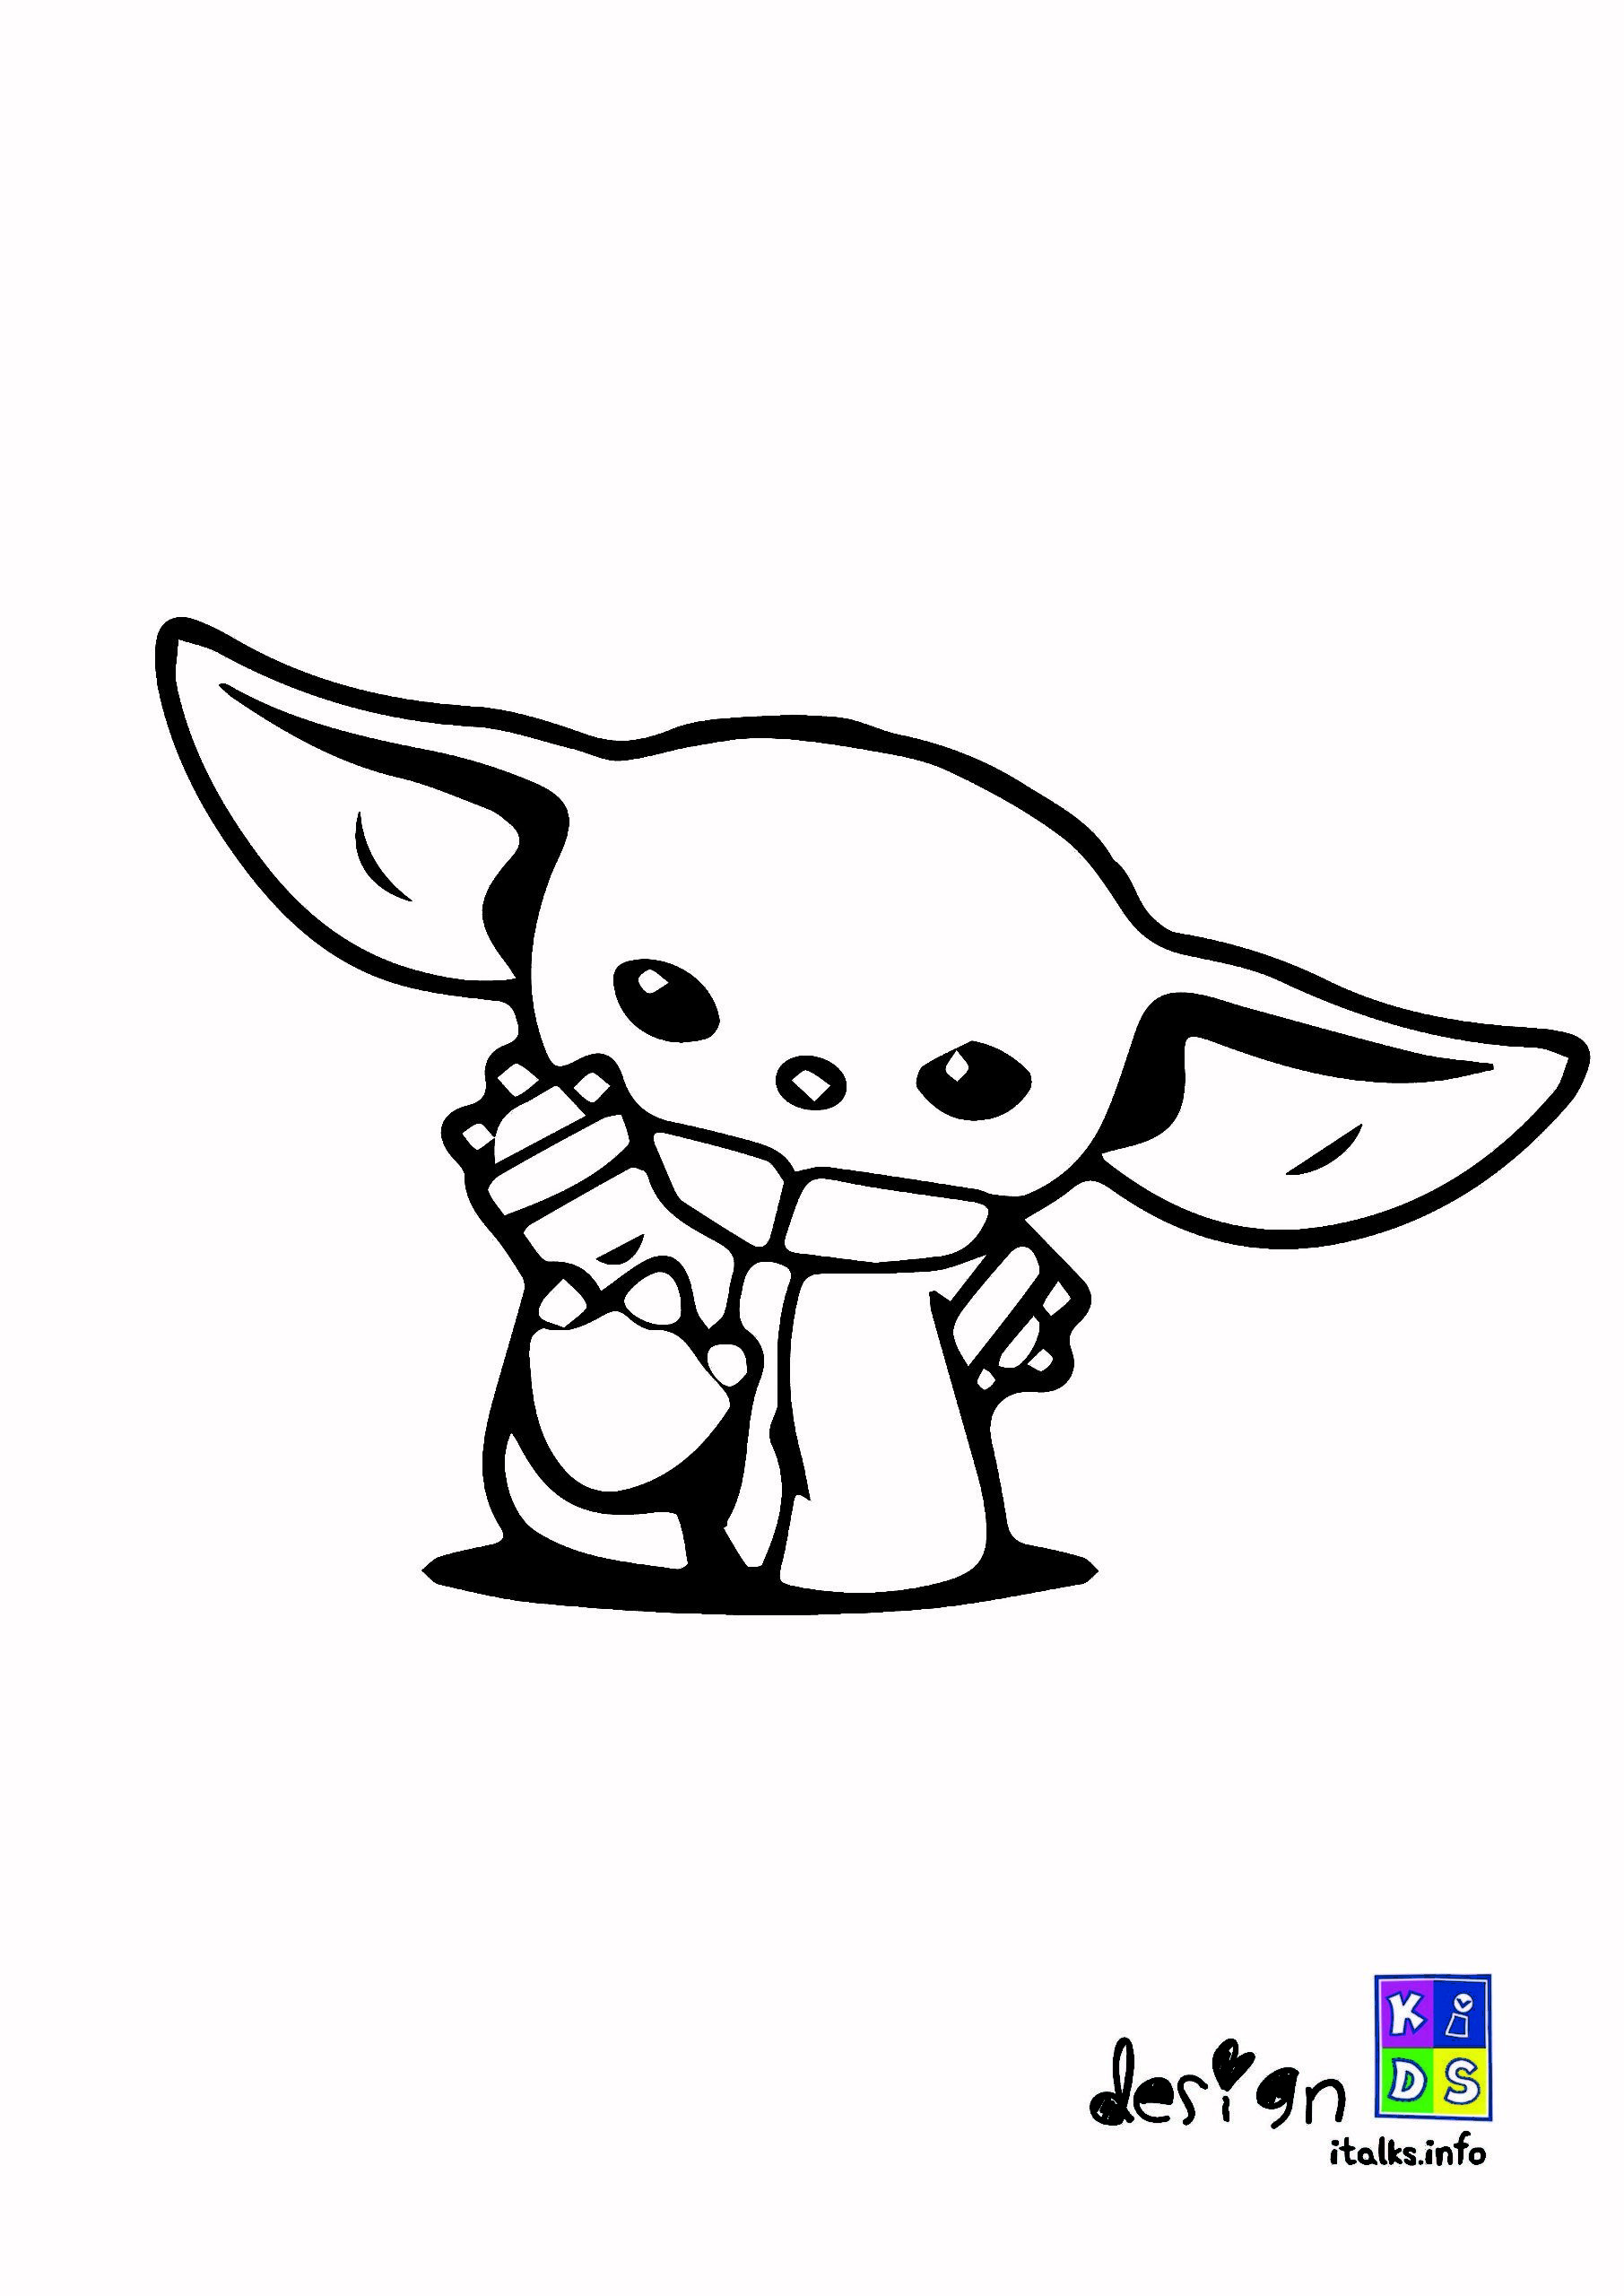 Designkids Baby Yoda Coloring Page Free Coloring Pages Free Coloring Pages Free Printable Coloring Pages